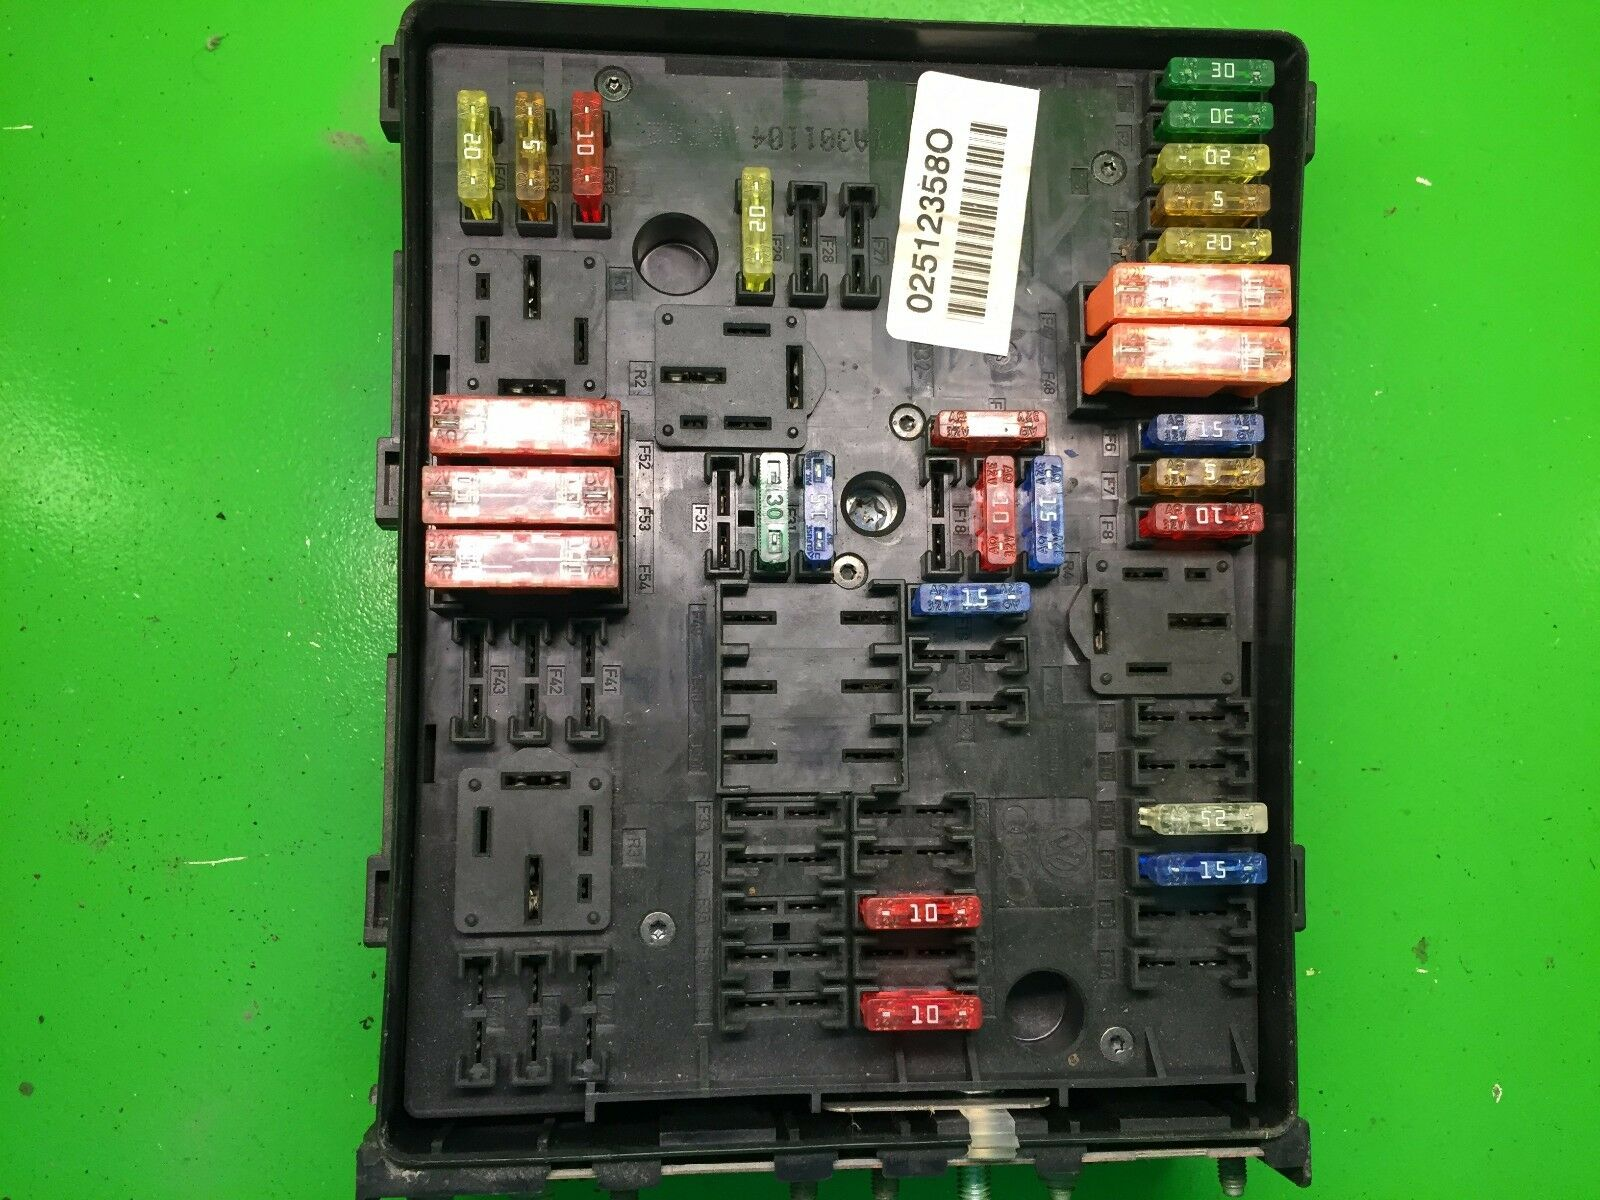 Vw Golf Mk5 16 Fsi Audi A3 8p 20 Tfsi Fuse Box Relay Module 3 2